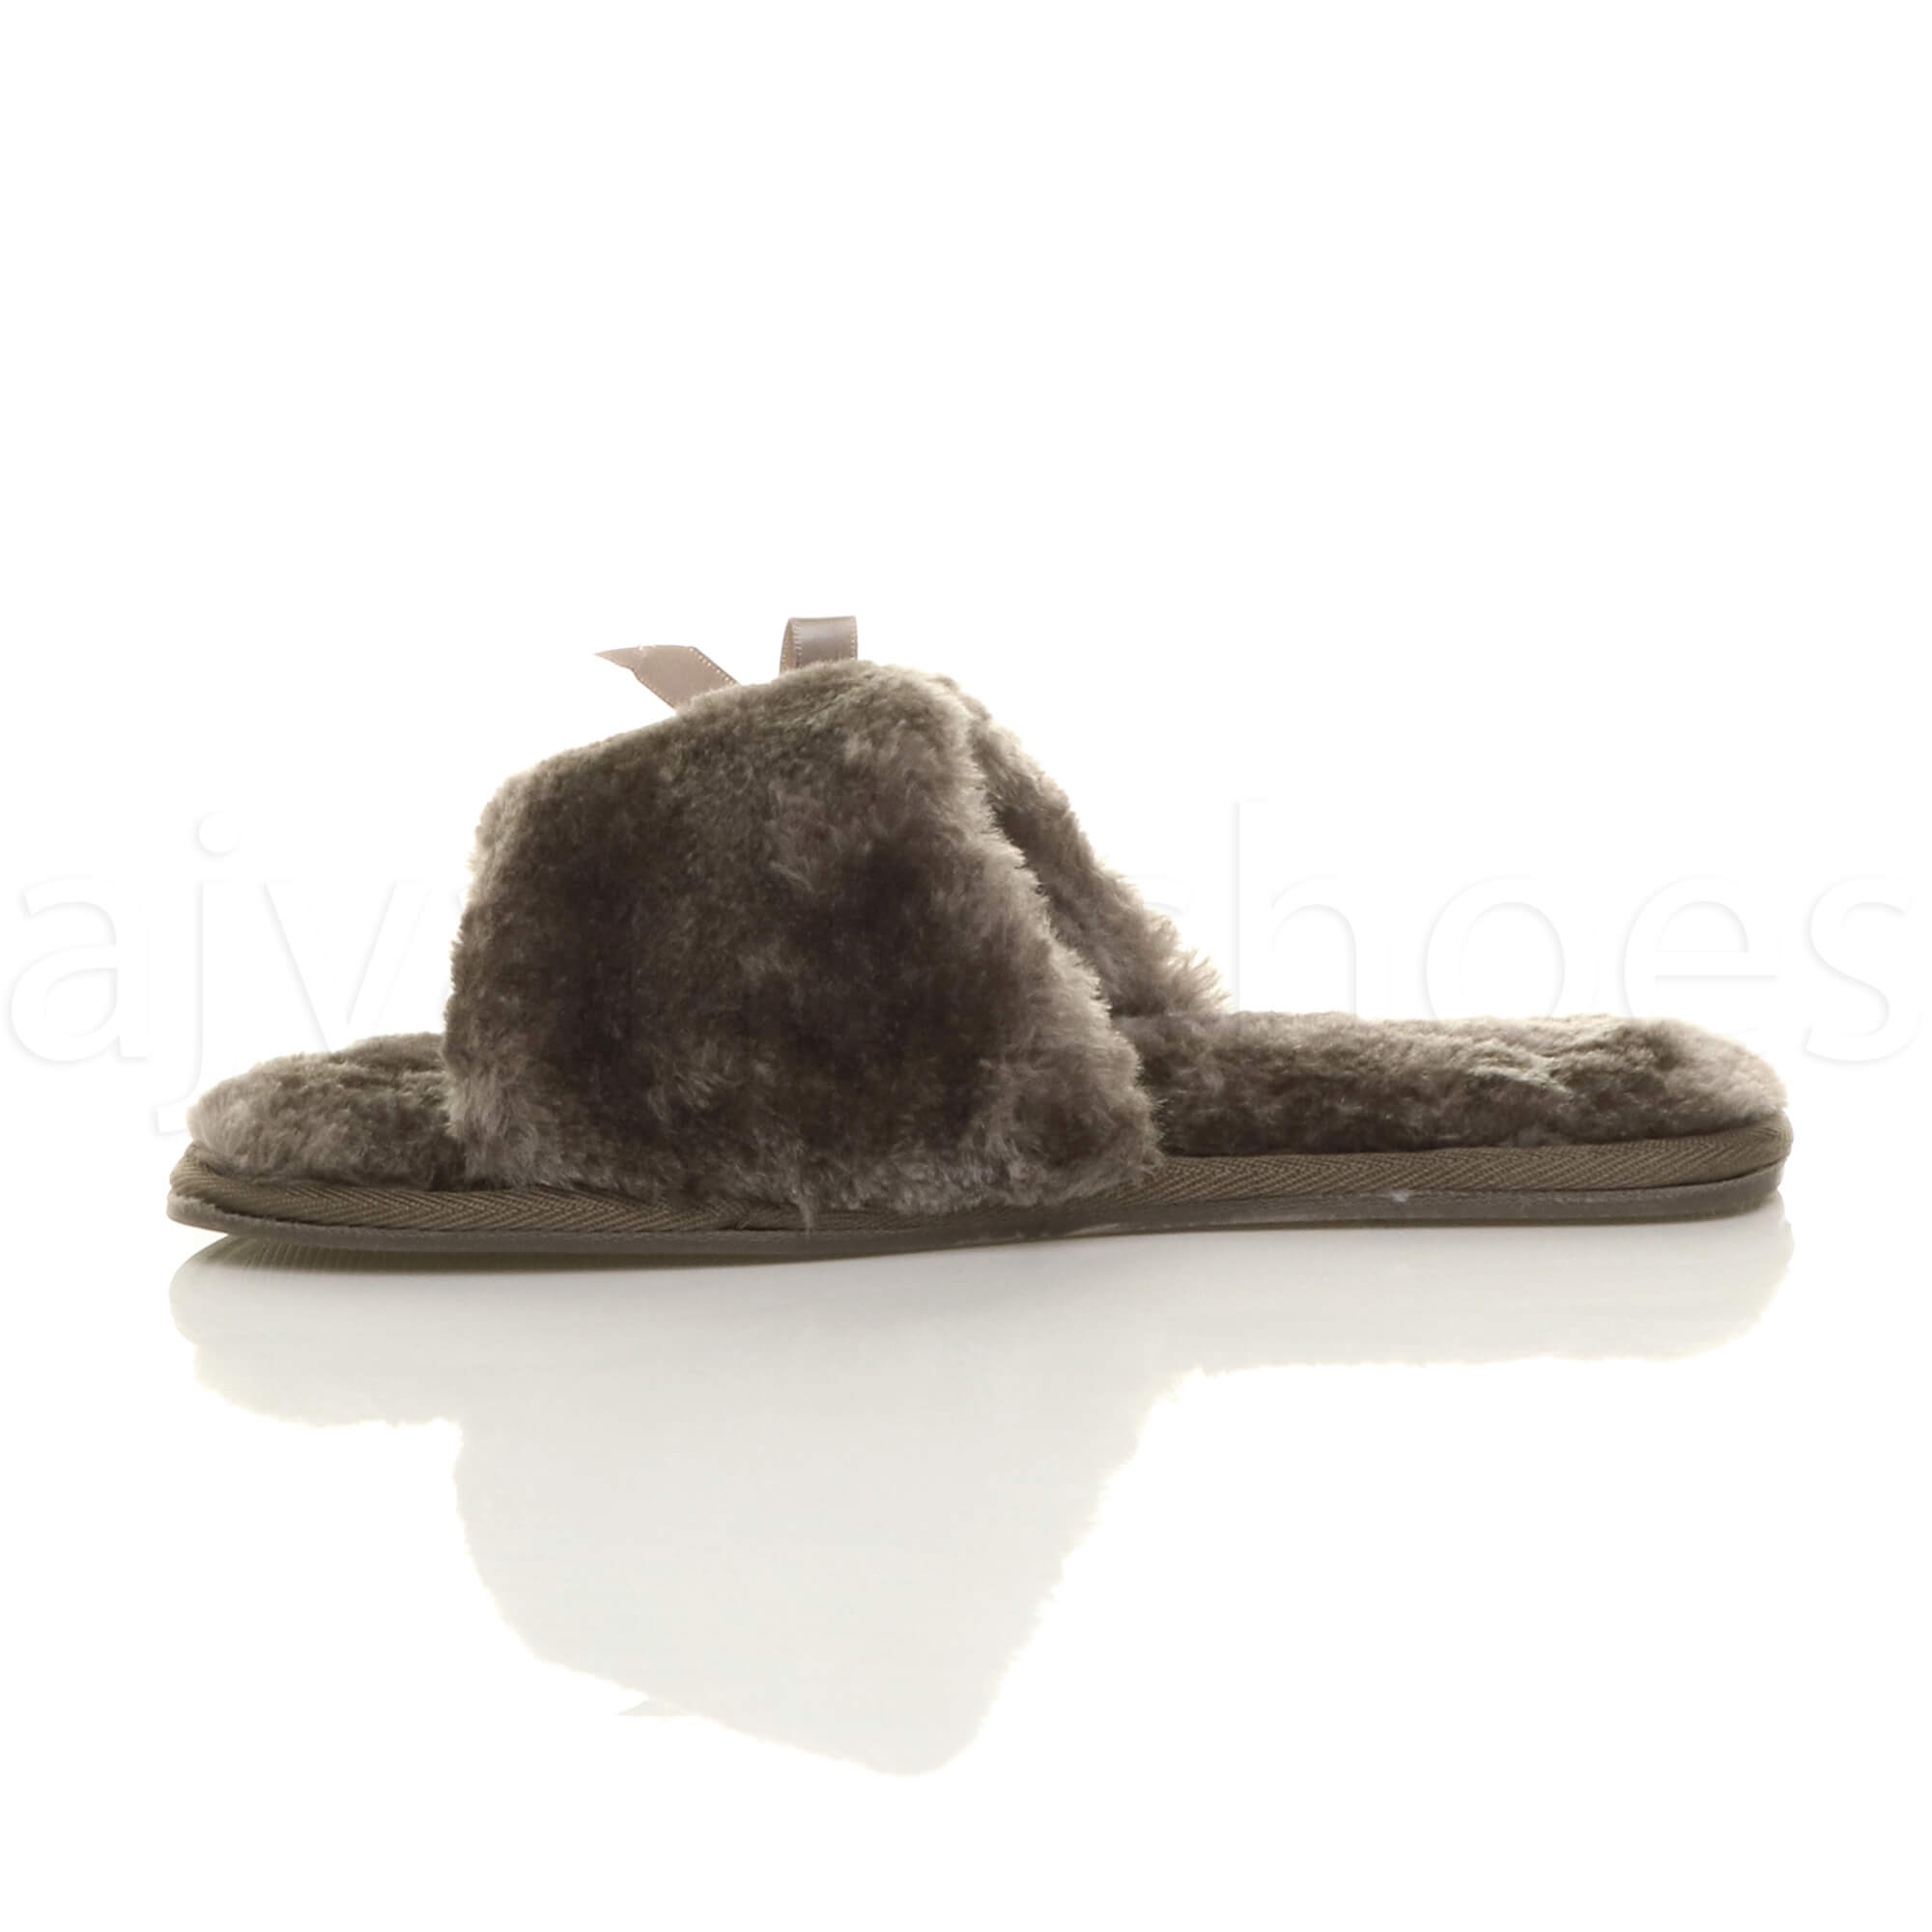 WOMENS-LADIES-FLAT-PEEP-TOE-BOW-LUXURY-COSY-FUR-LINED-SLIP-ON-SLIPPERS-SIZE thumbnail 36